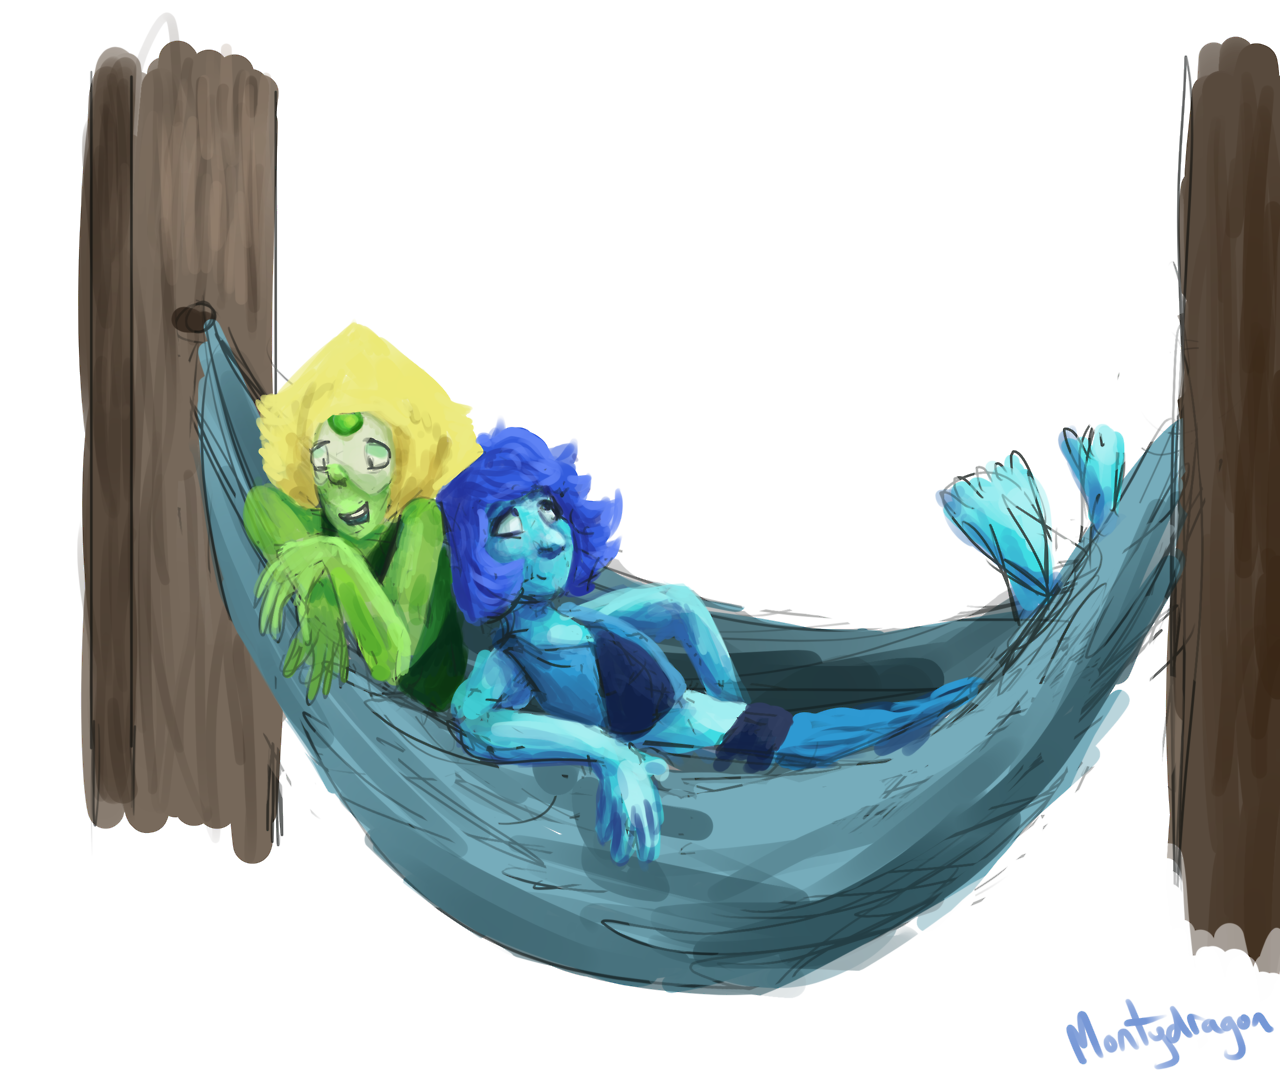 @mariachi-screamo-opera I'M SO SORRY THIS TOOK SO LONG!! I was experimenting around with colors and things and I got sidetracked a lot… Well, at least now it's done. Here you are! Some hammock...